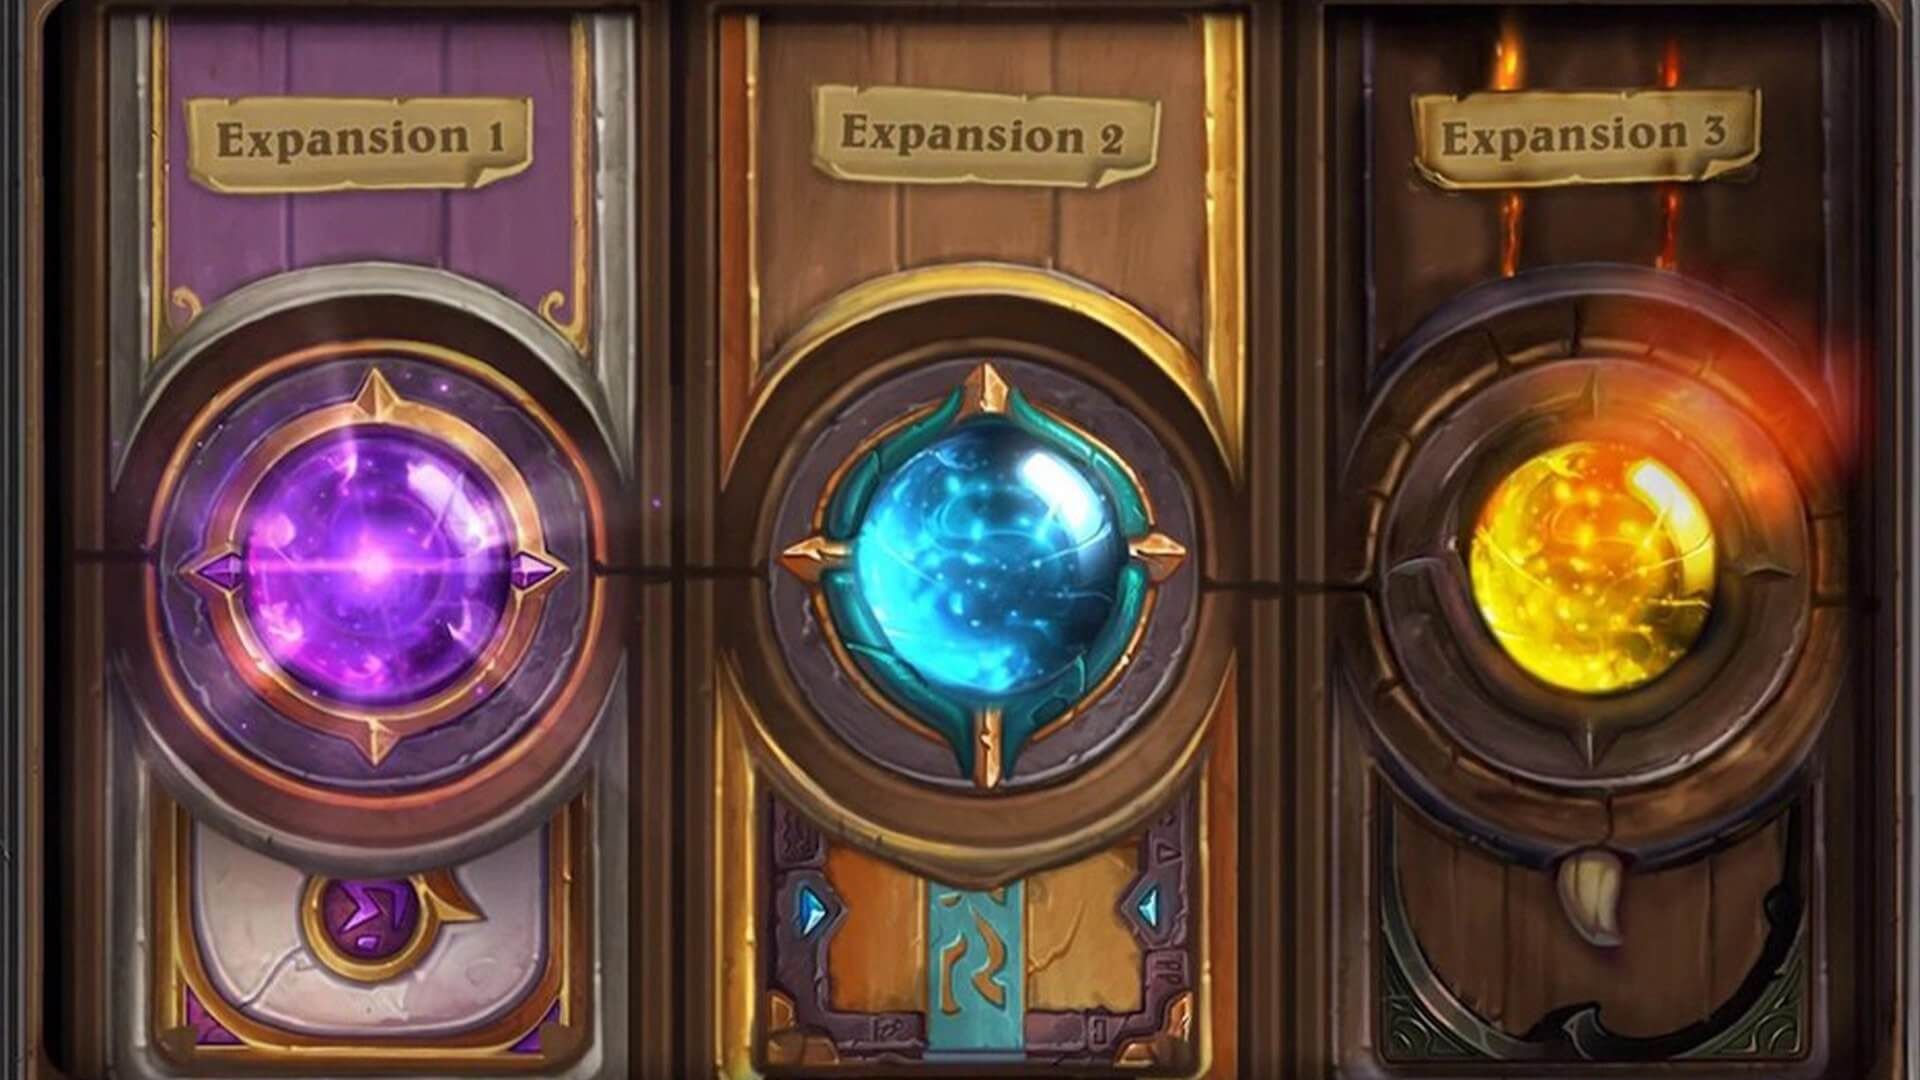 2019 Hearthstone expansions